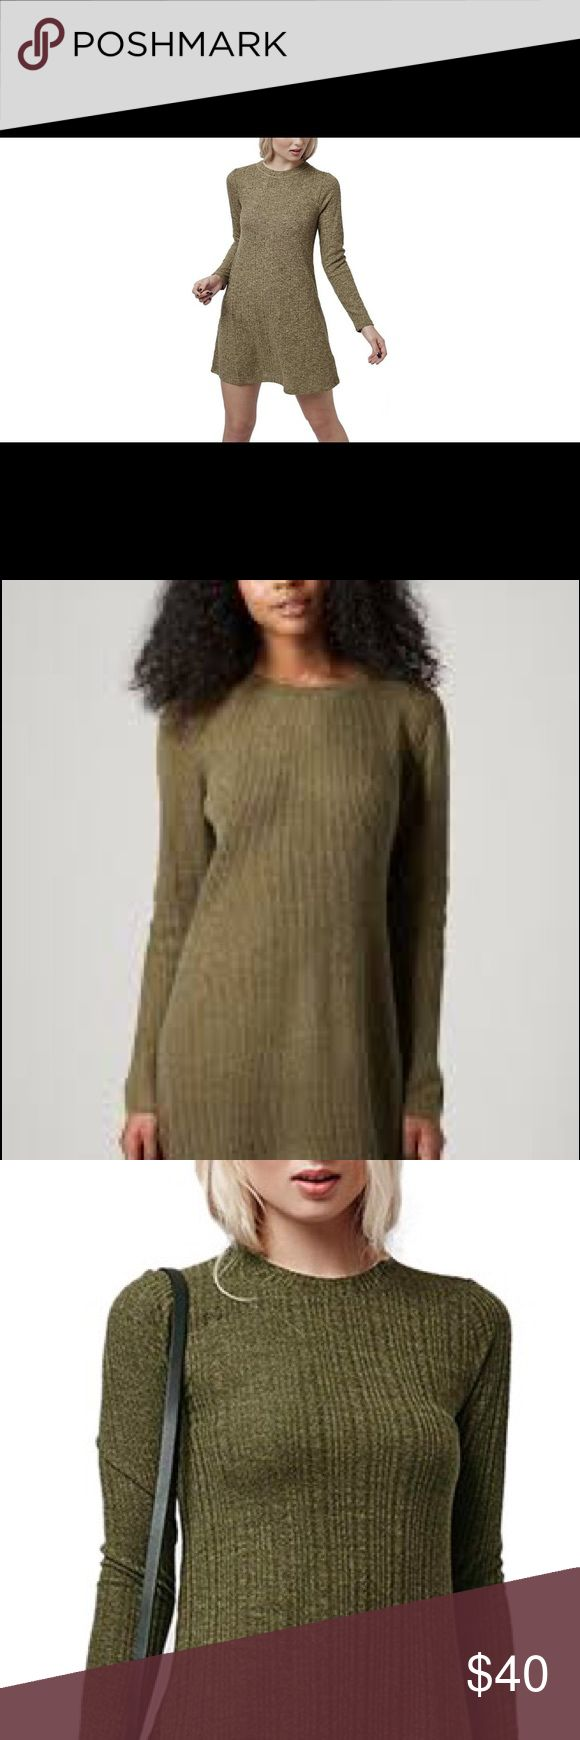 TOPSHOP ribbed olive green long sleeve tunic dress Tunic dress- olive green. So comfortable, playful! Worn as dress or with leggings - soft ribbed round neck, long sleeve, 70% Acrylic, 16% Nylon, 14% Angora. Machine washable. Topshop Dresses Mini